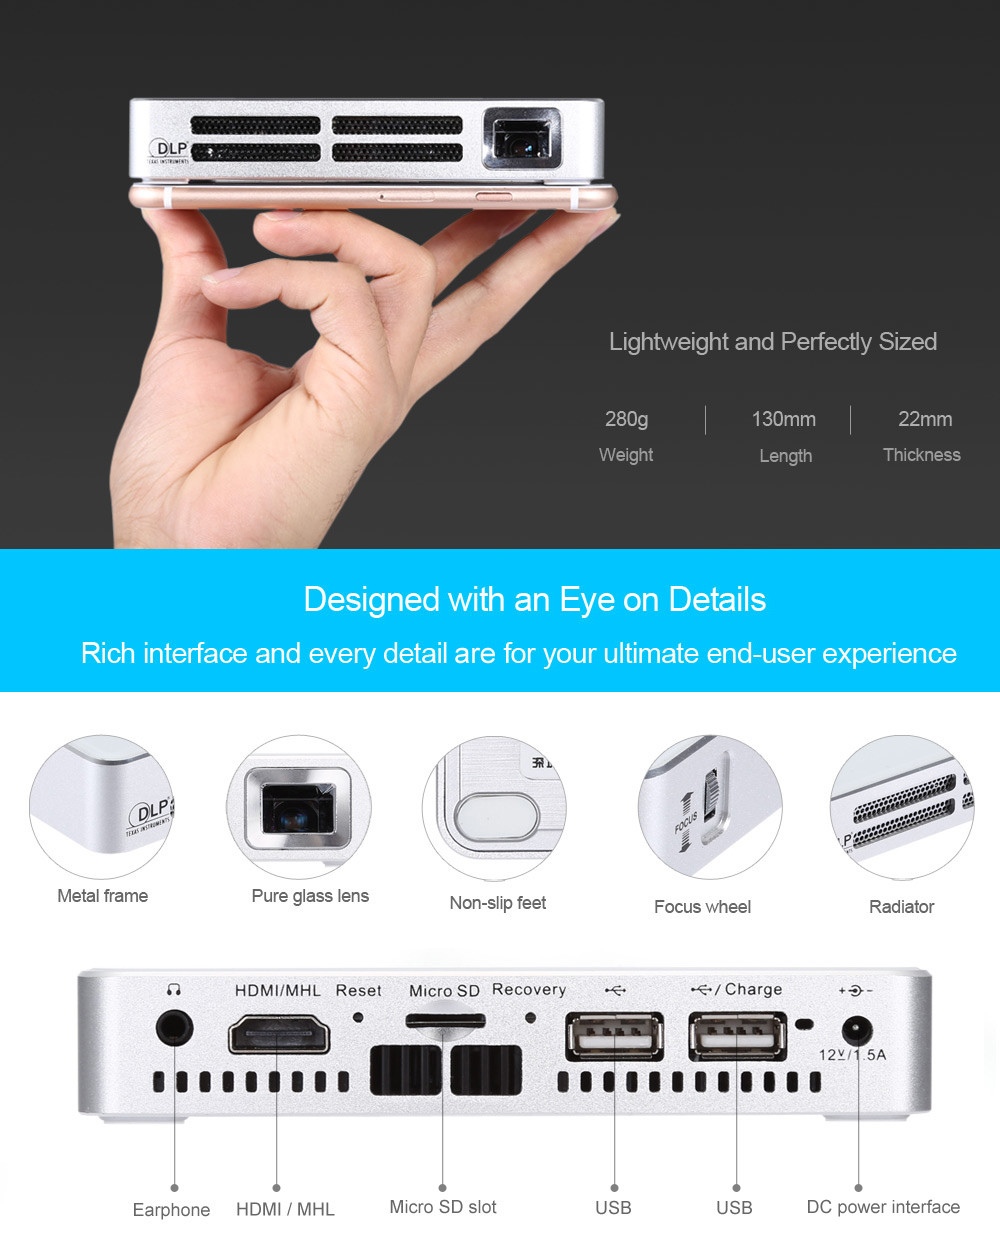 wowoto A5 75 Lumens 850 x 480 Pixels Mini DLP Projector Support HDMI AV USB Micro SD Card Slot for Home Theater Business